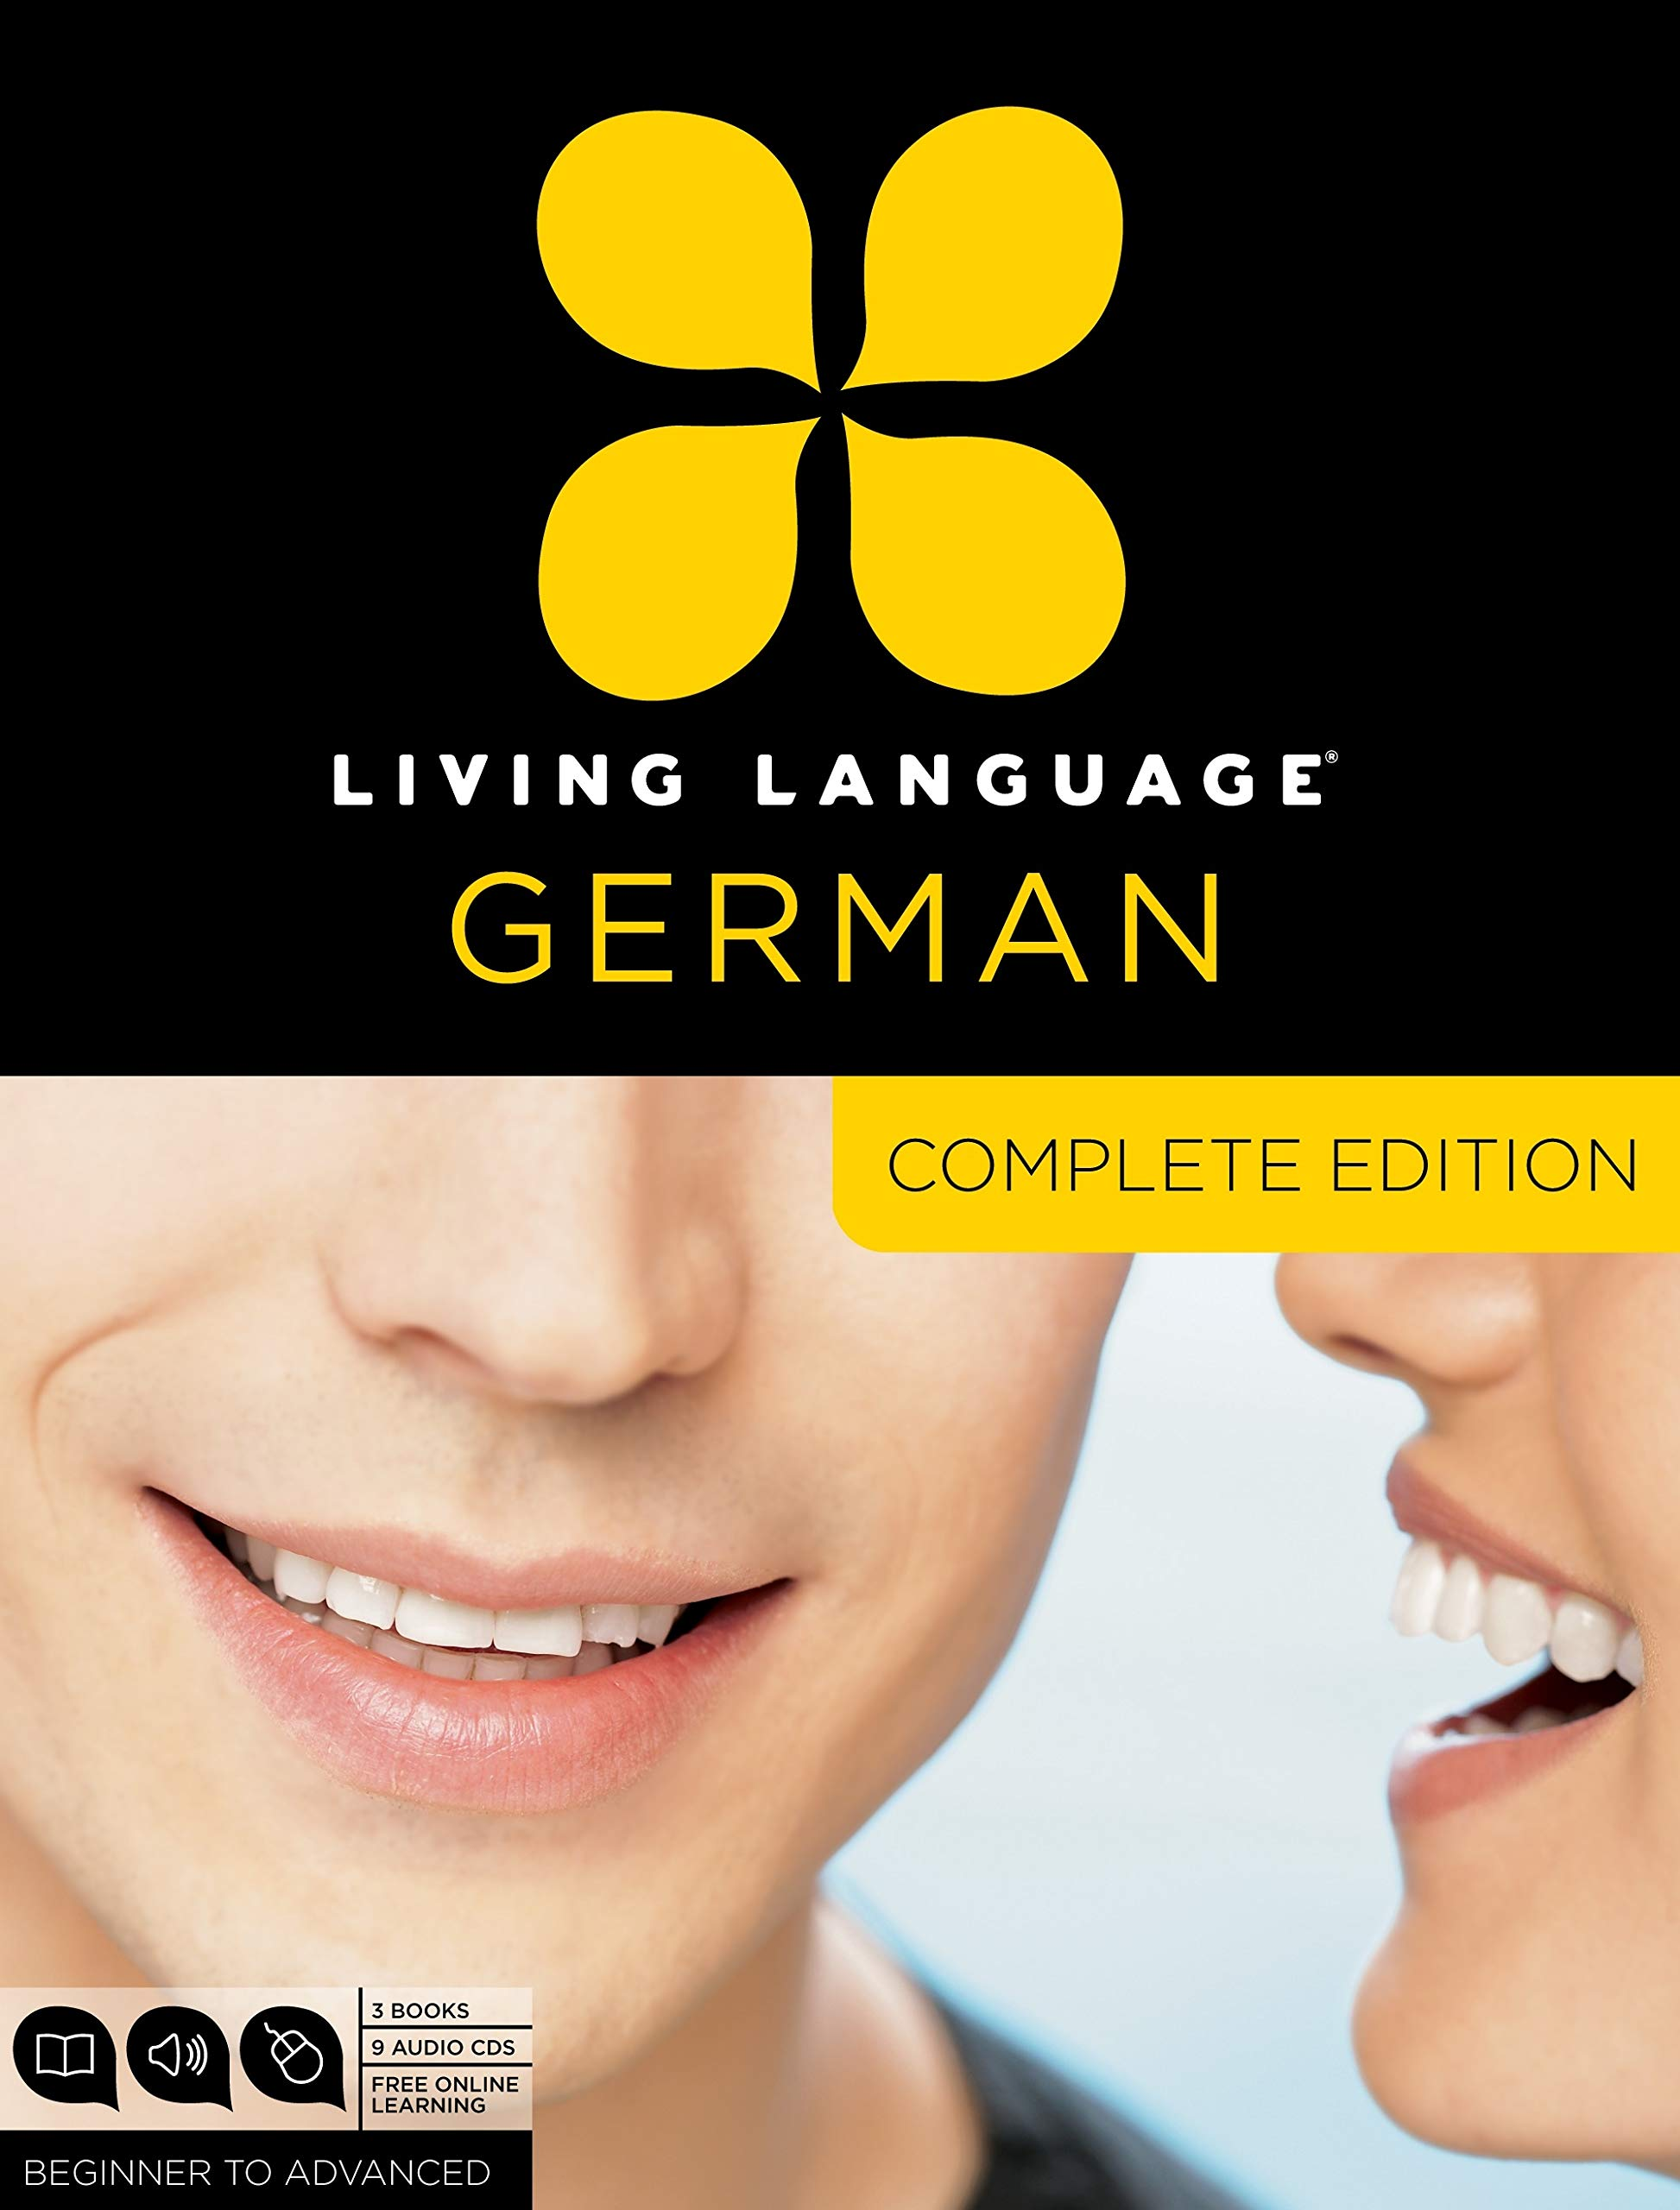 Living Language German Complete Edition  Beginner Through Advanced Course Including 3 Coursebooks 9 Audio CDs And Free Online Learning